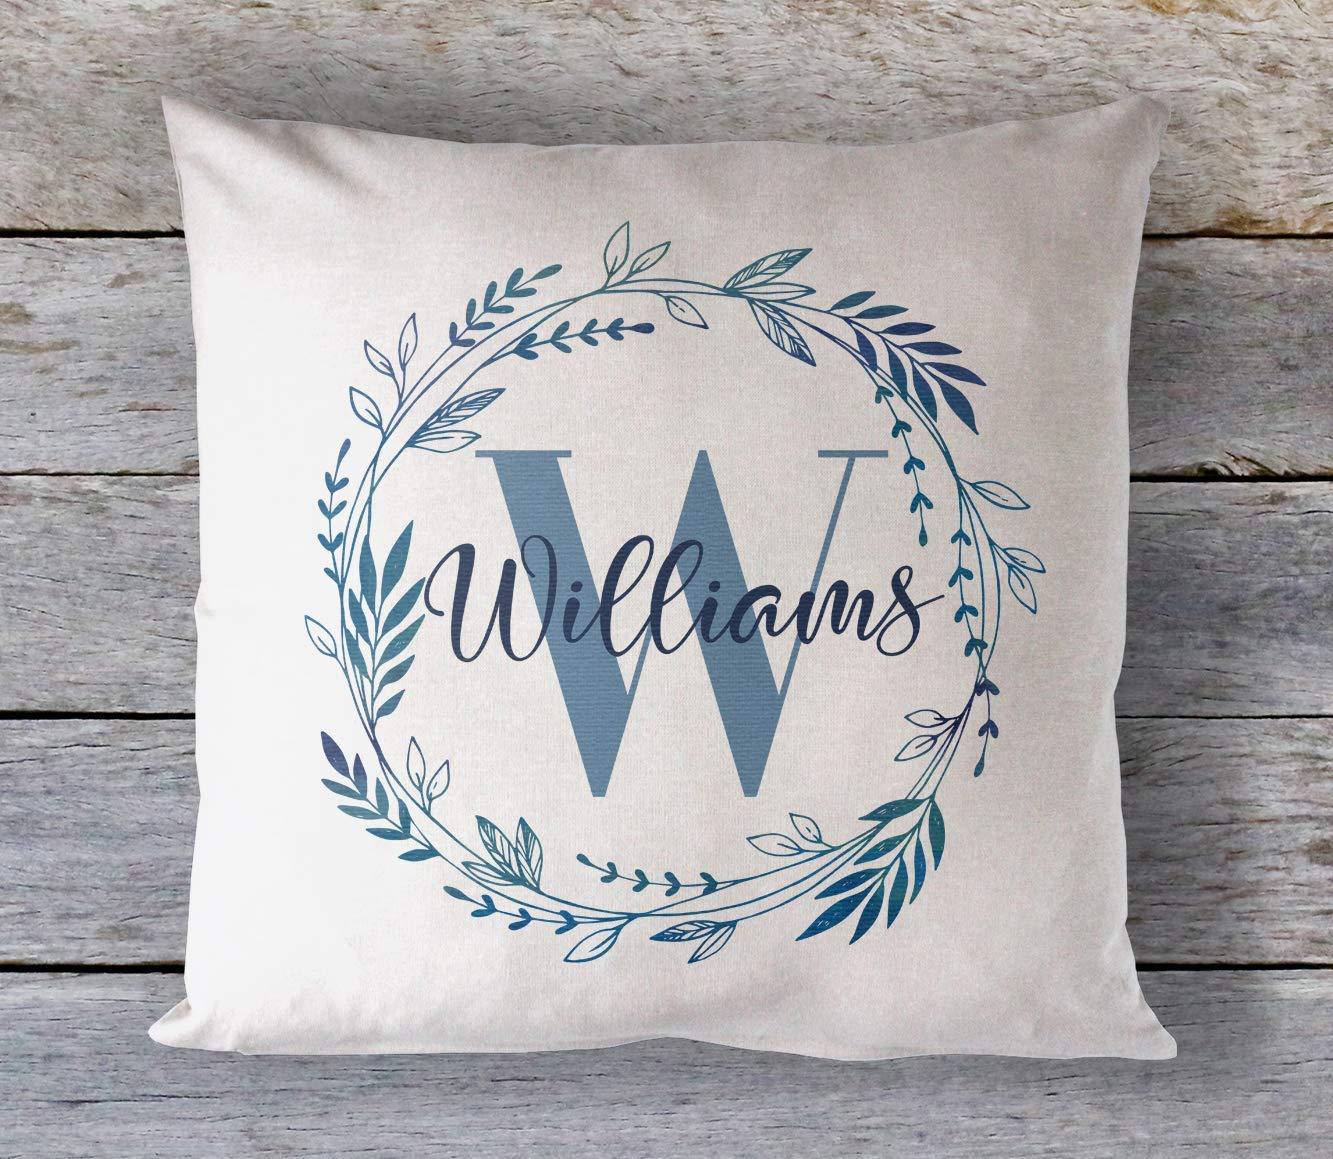 Amazon.com: Personalized Name Wreath Pillow Cover, Custom Pillow Cushion  Cover, Rustic Country Decor Pillow, Decorative Throw Pillow Case, Farmhouse  Printed Pillow: Handmade